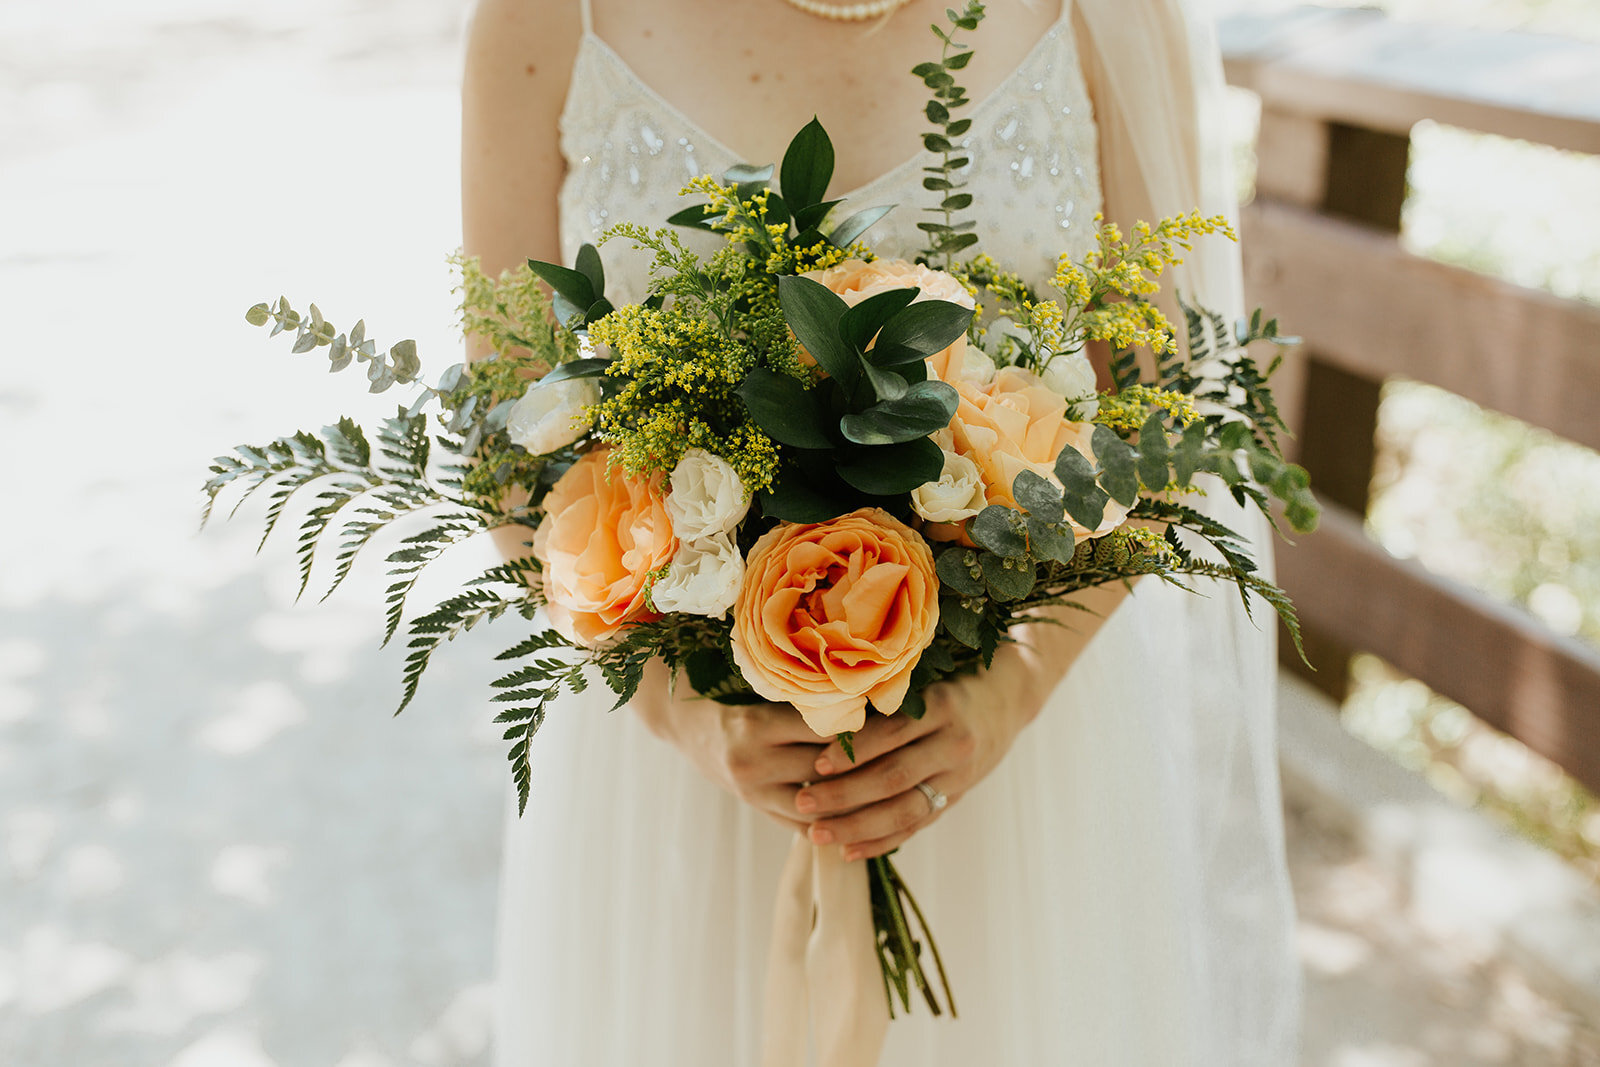 Oak_Canyon_Nature_Center_Wedding_Kori___Jhauvy___Emily_Magers_Photography-84